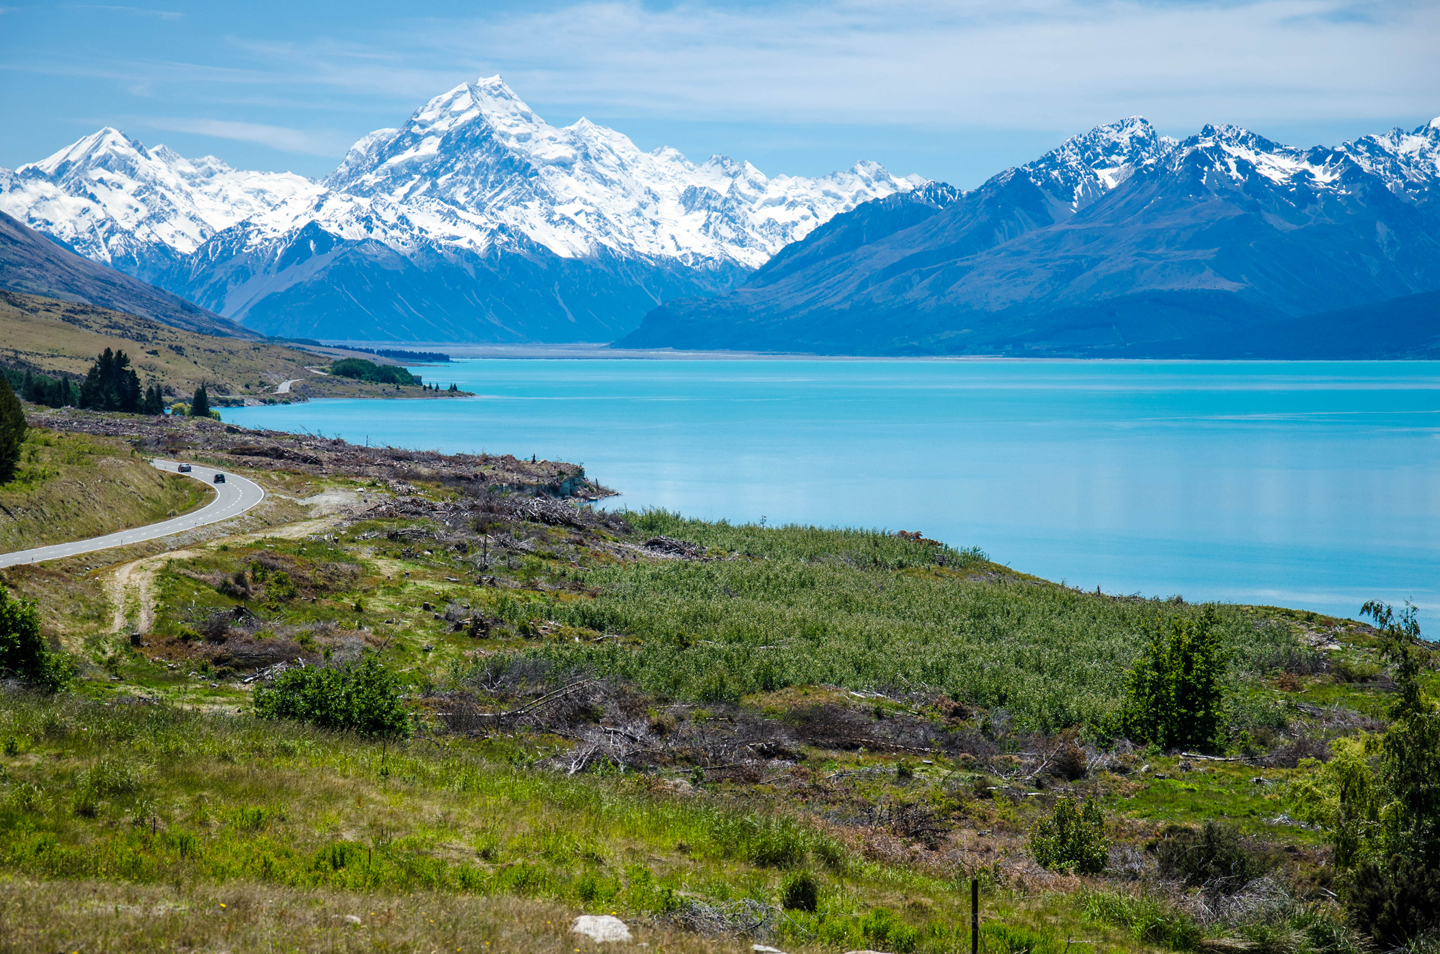 """New Zealand's highest peak Mt. Cook and Lake Pukaki were used as backdrop in """"The Lord of the Rings"""" and """"The Hobbit"""" movies."""